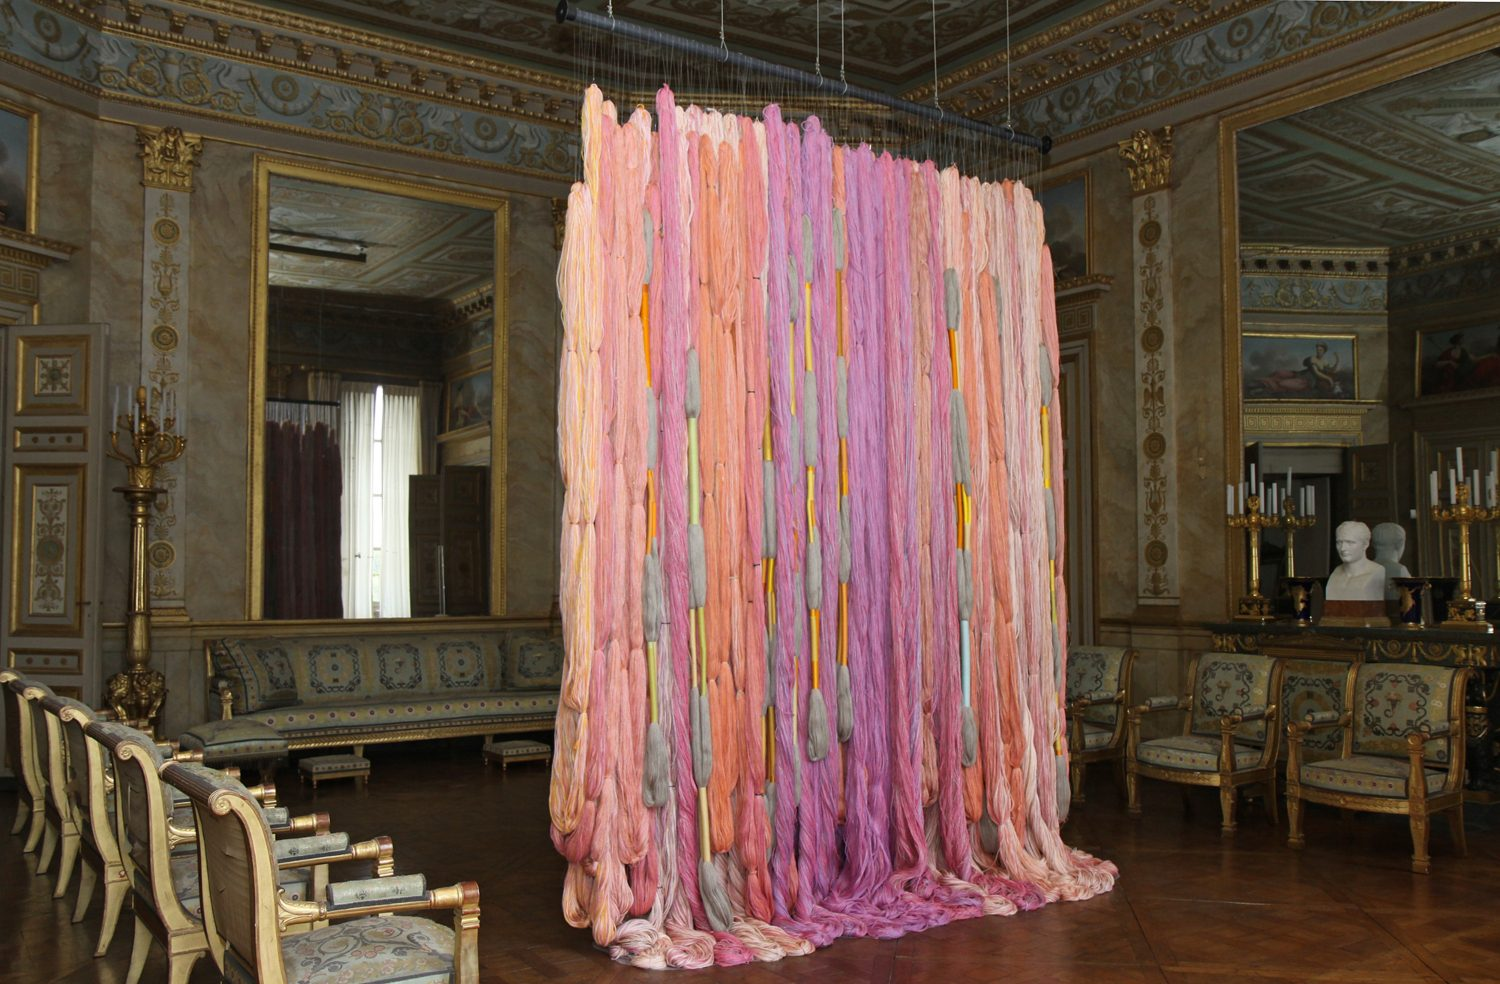 Populaire Sheila Hicks - Archives for Women Artists, Research and Exhibitions IF59